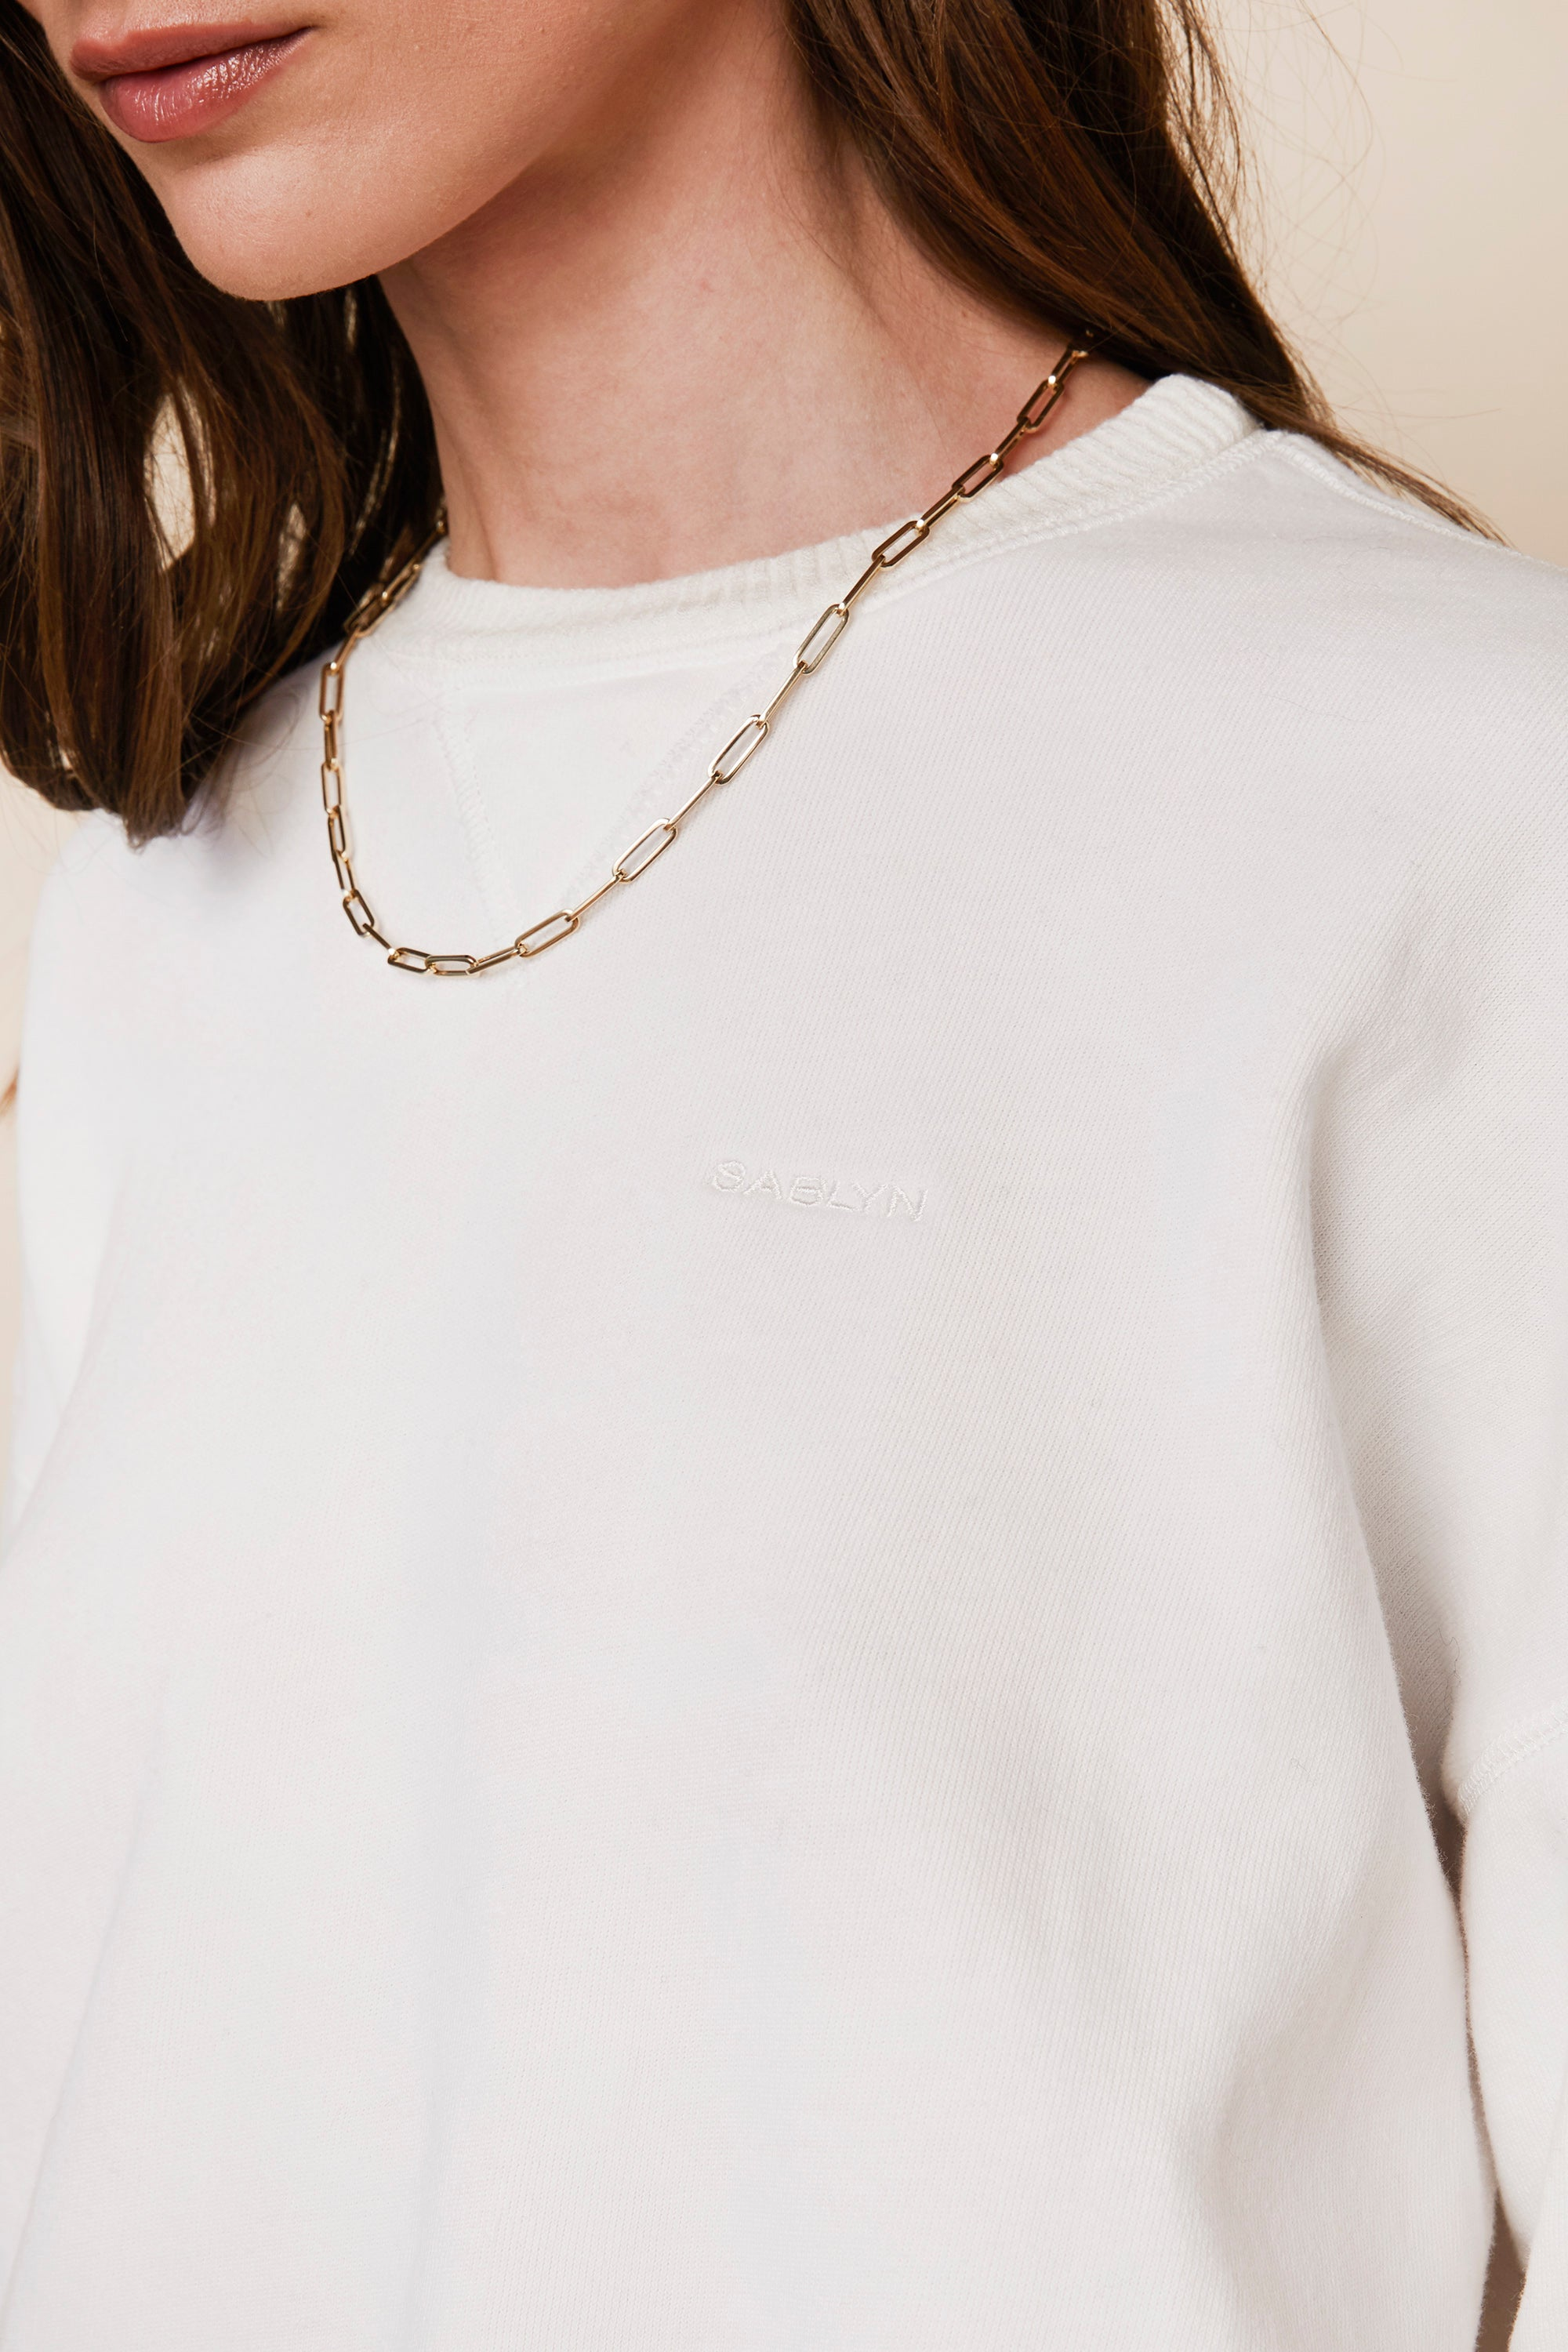 SABLYN X Jaimie Geller Jewelry 14k Paperclip Chain